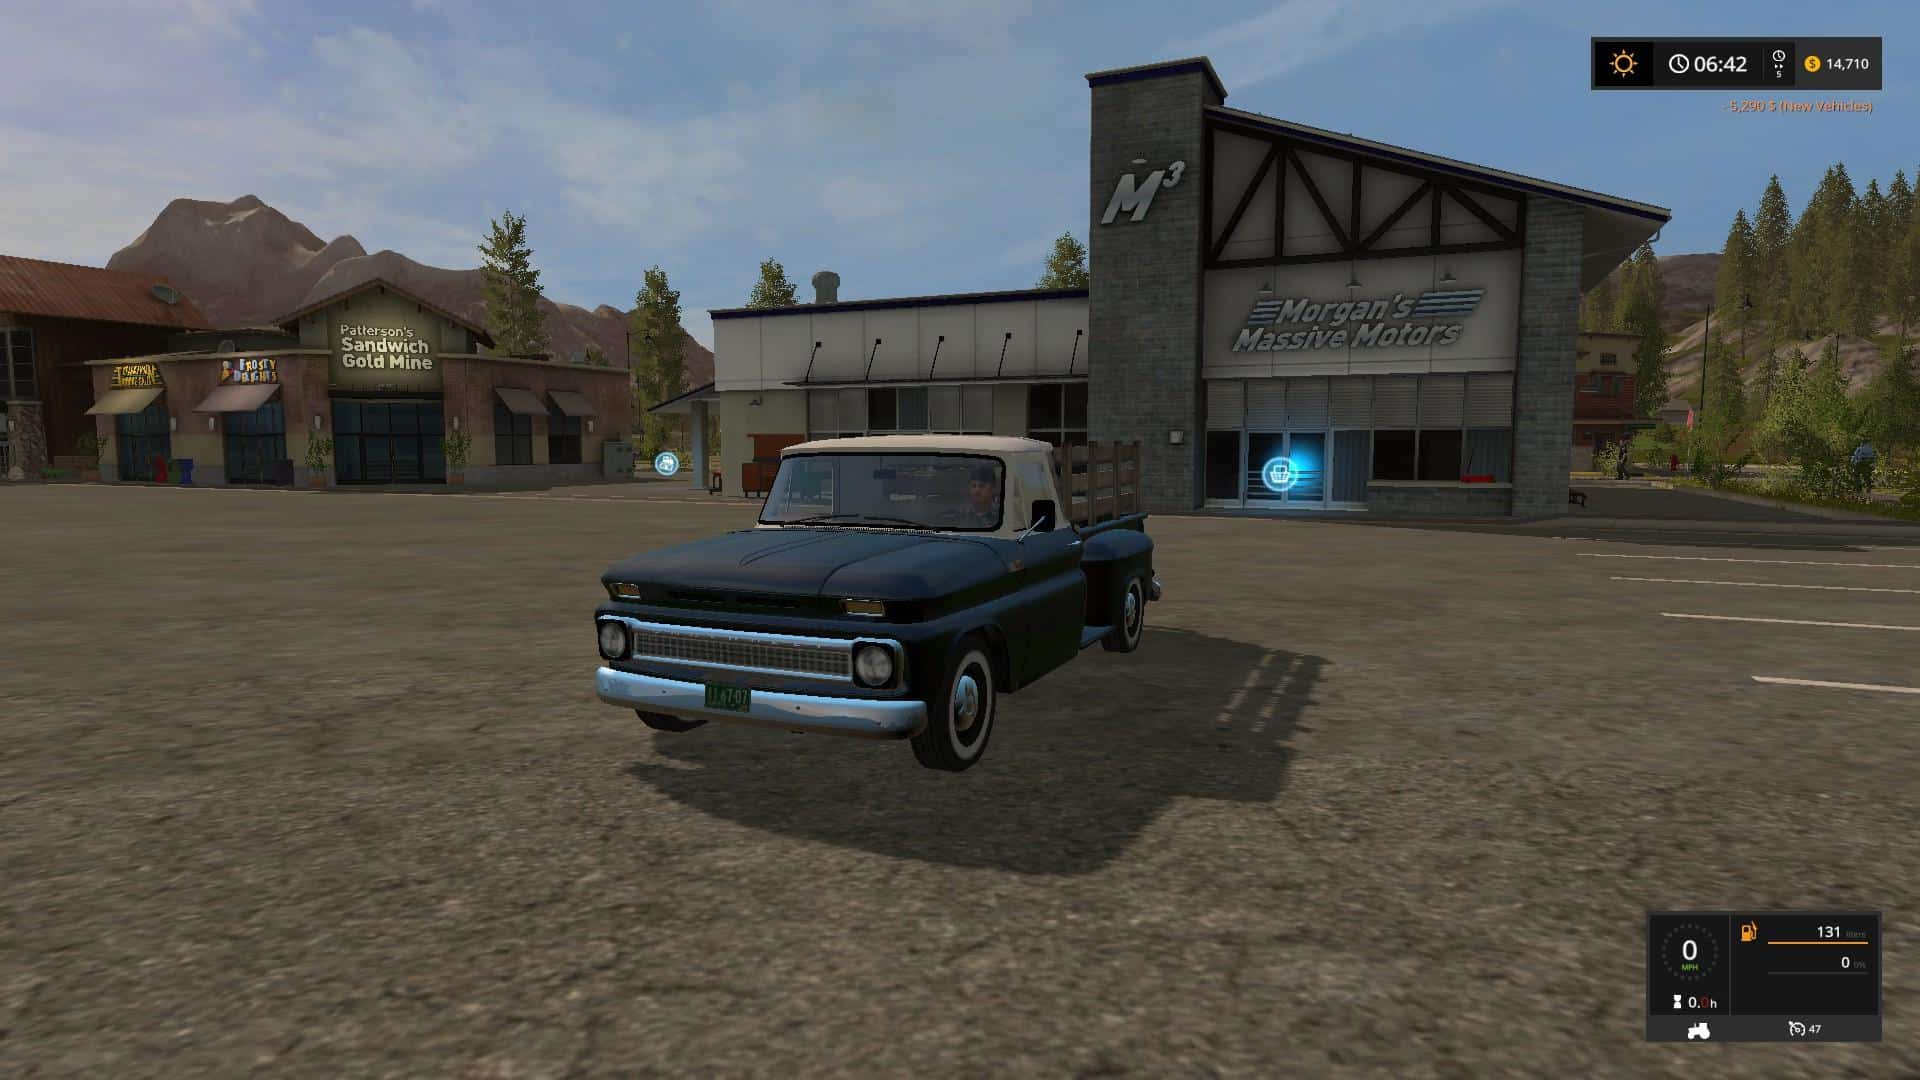 66 Chevy V1.0 Landons edit v1.0